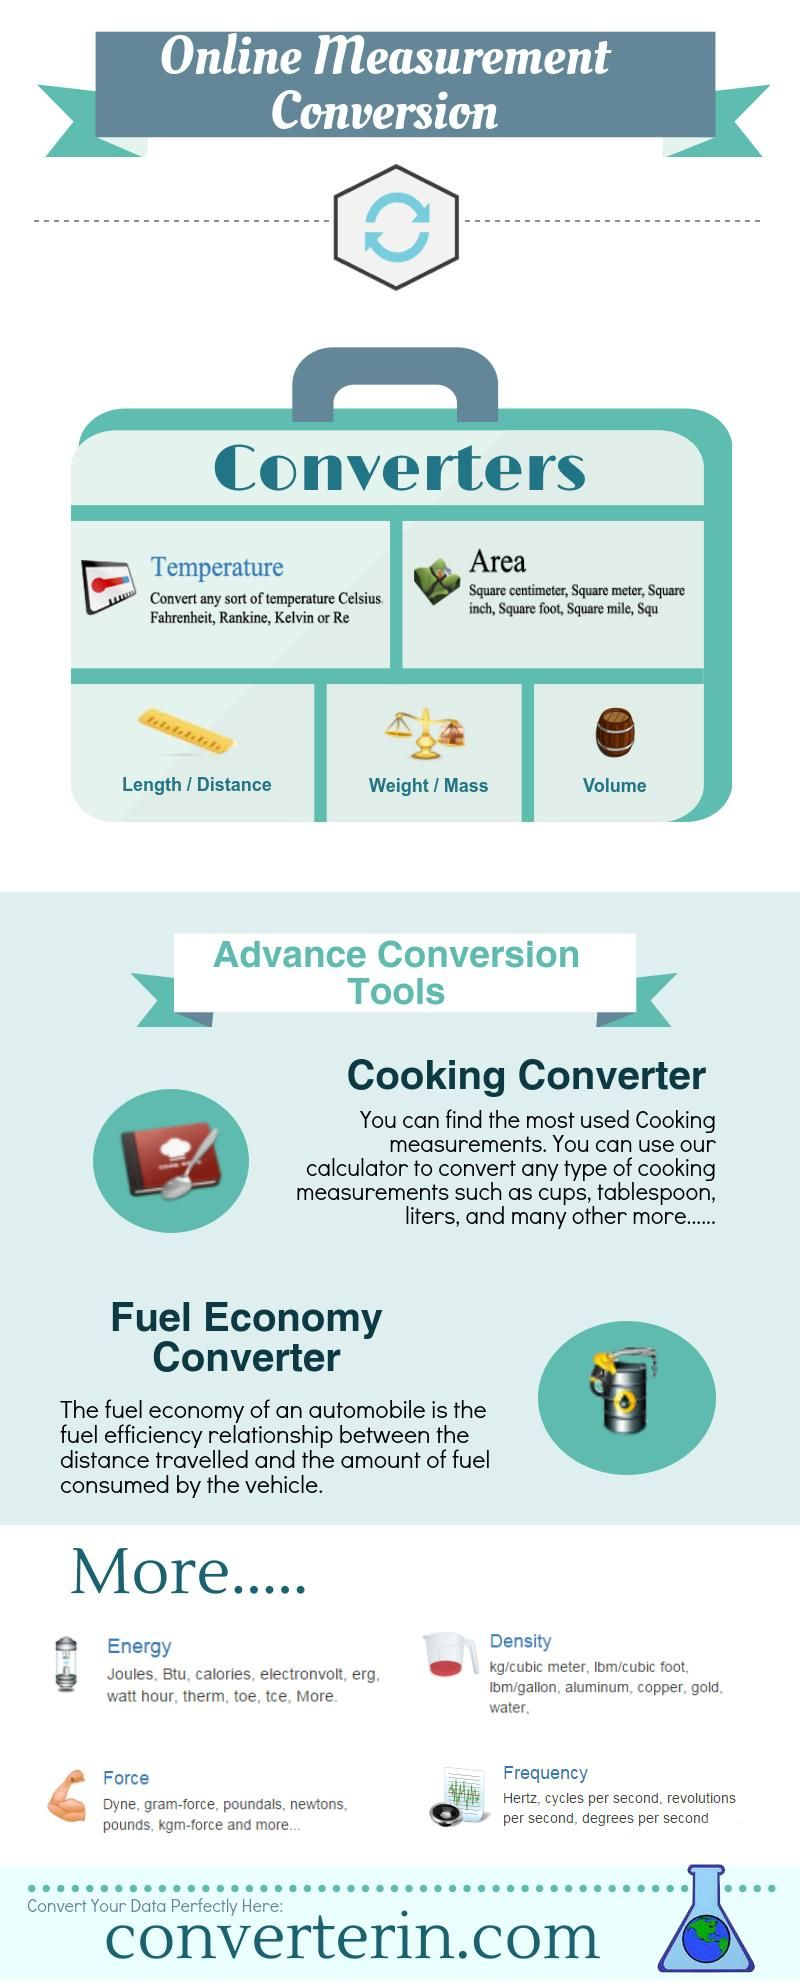 Converterin Is Definitely An Online Resource Which Primarily Provides Unit Conversion As Well Calculation Resources